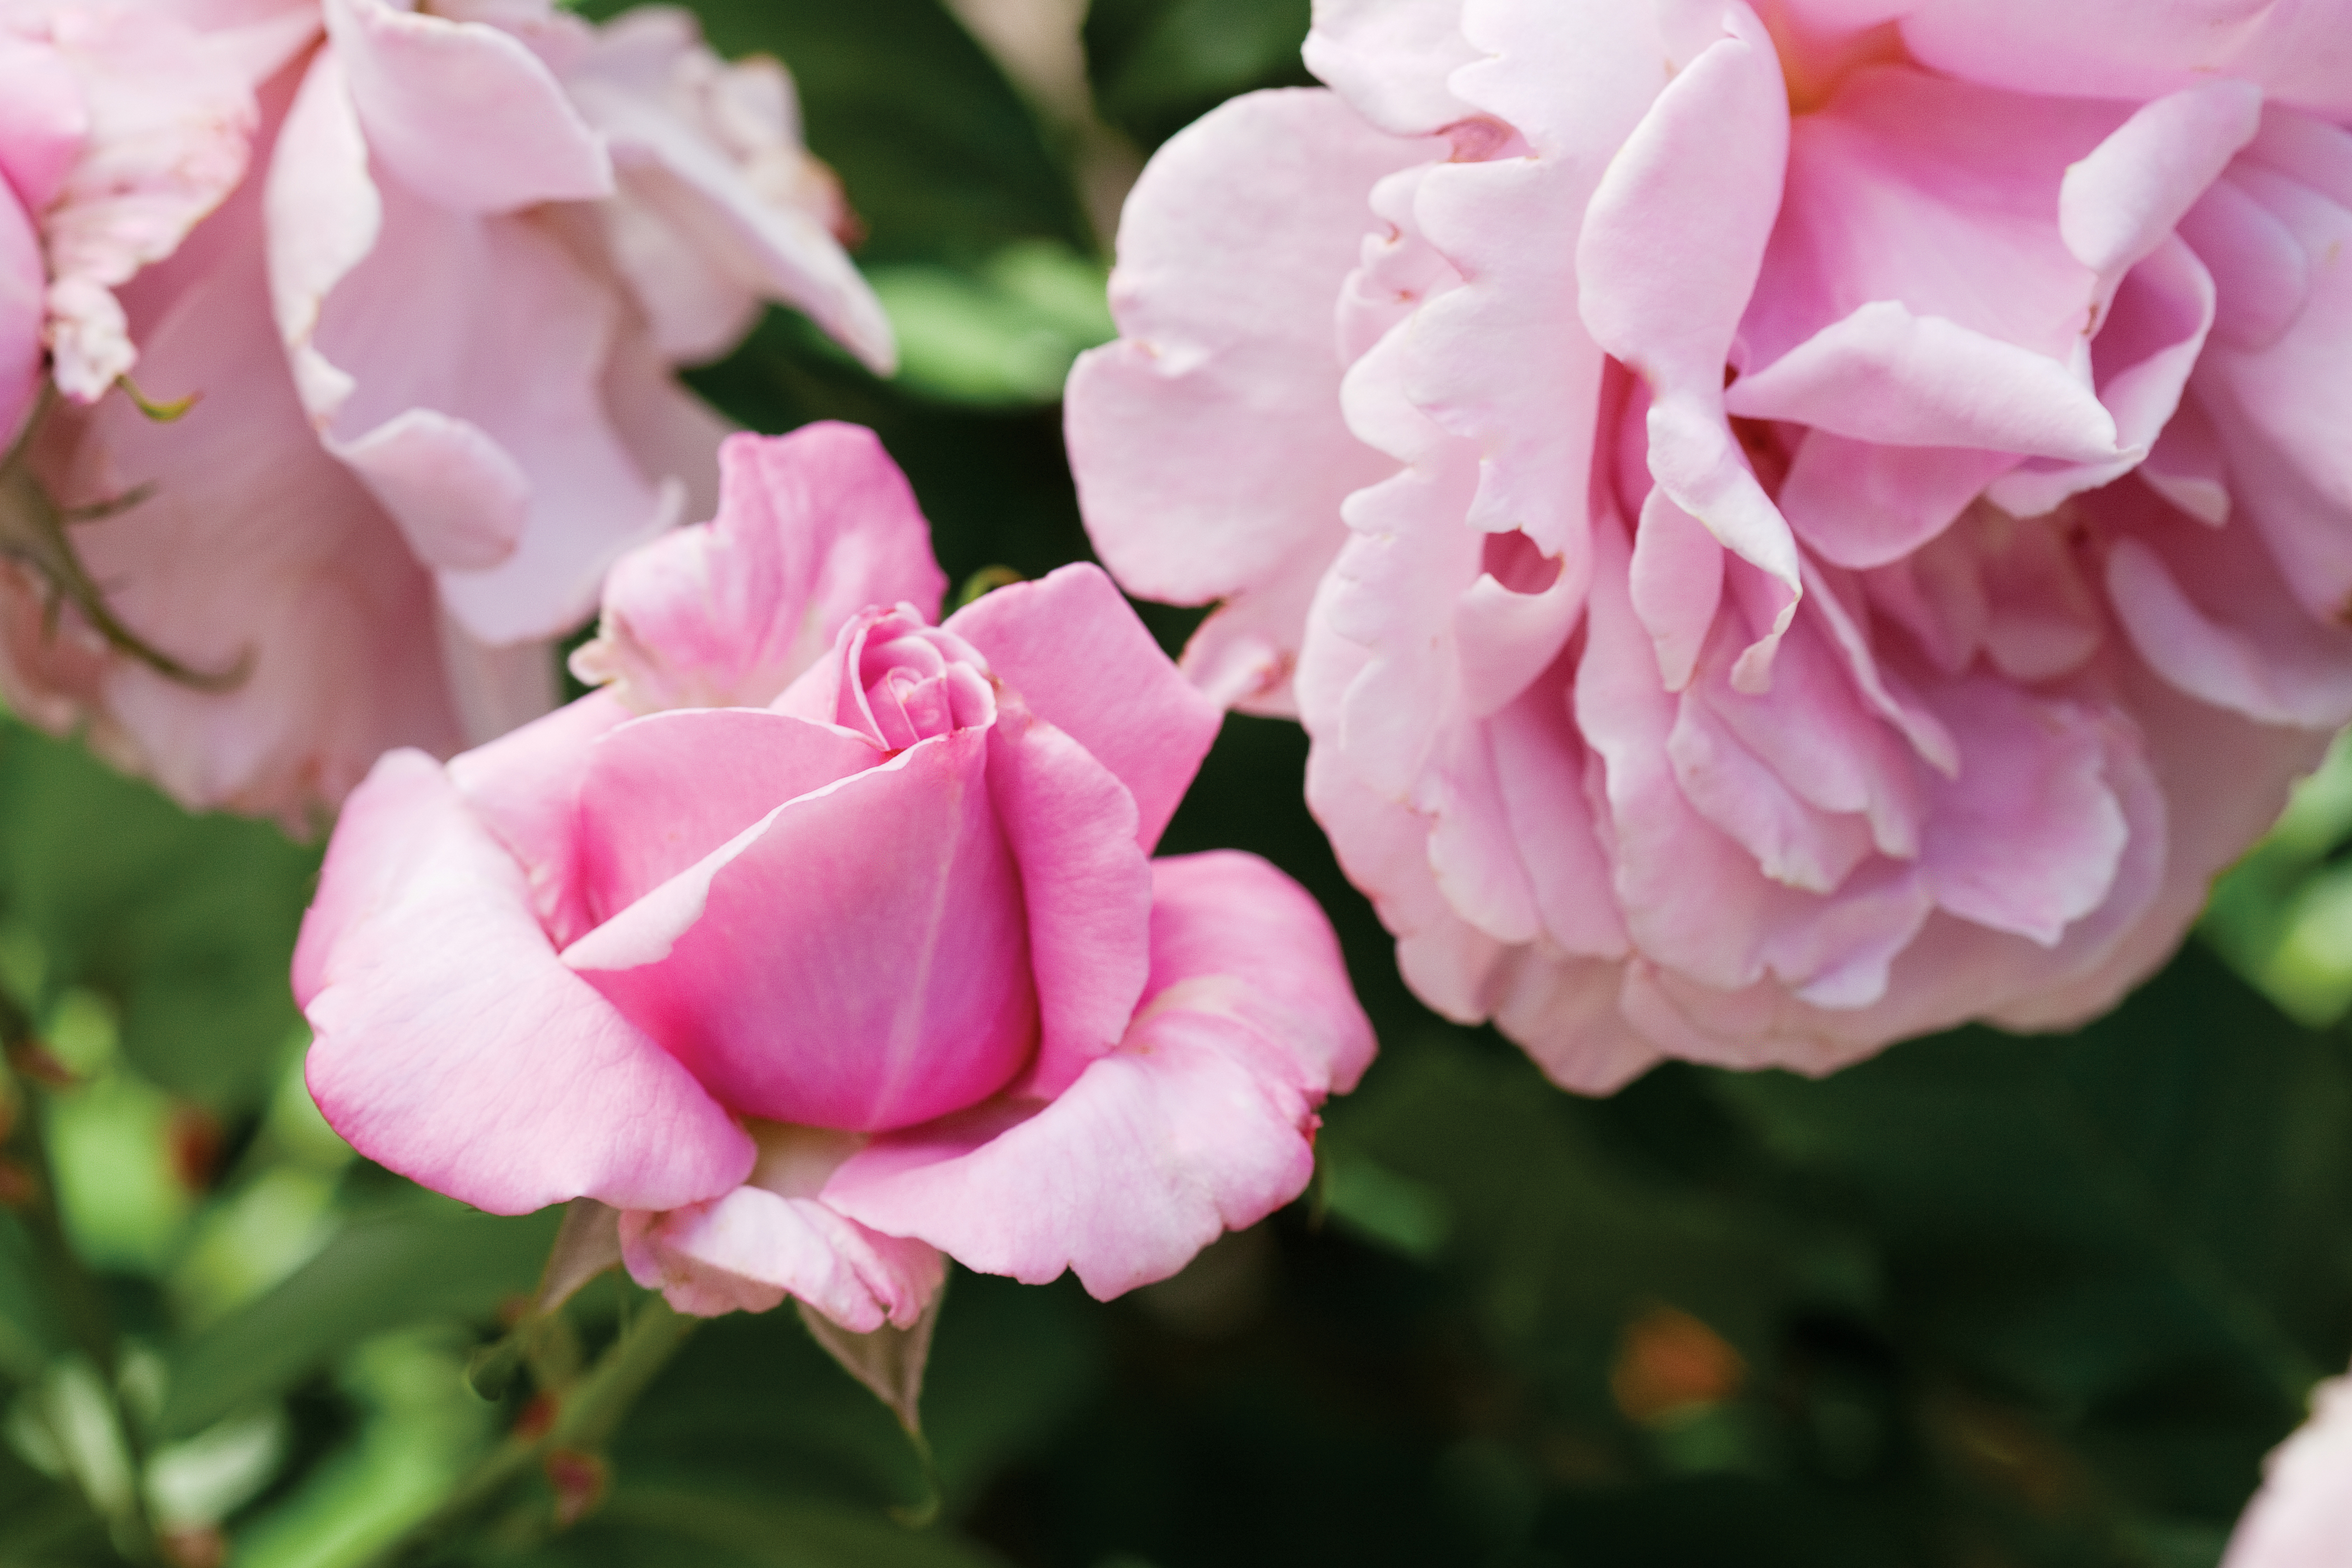 How to plant & care for roses